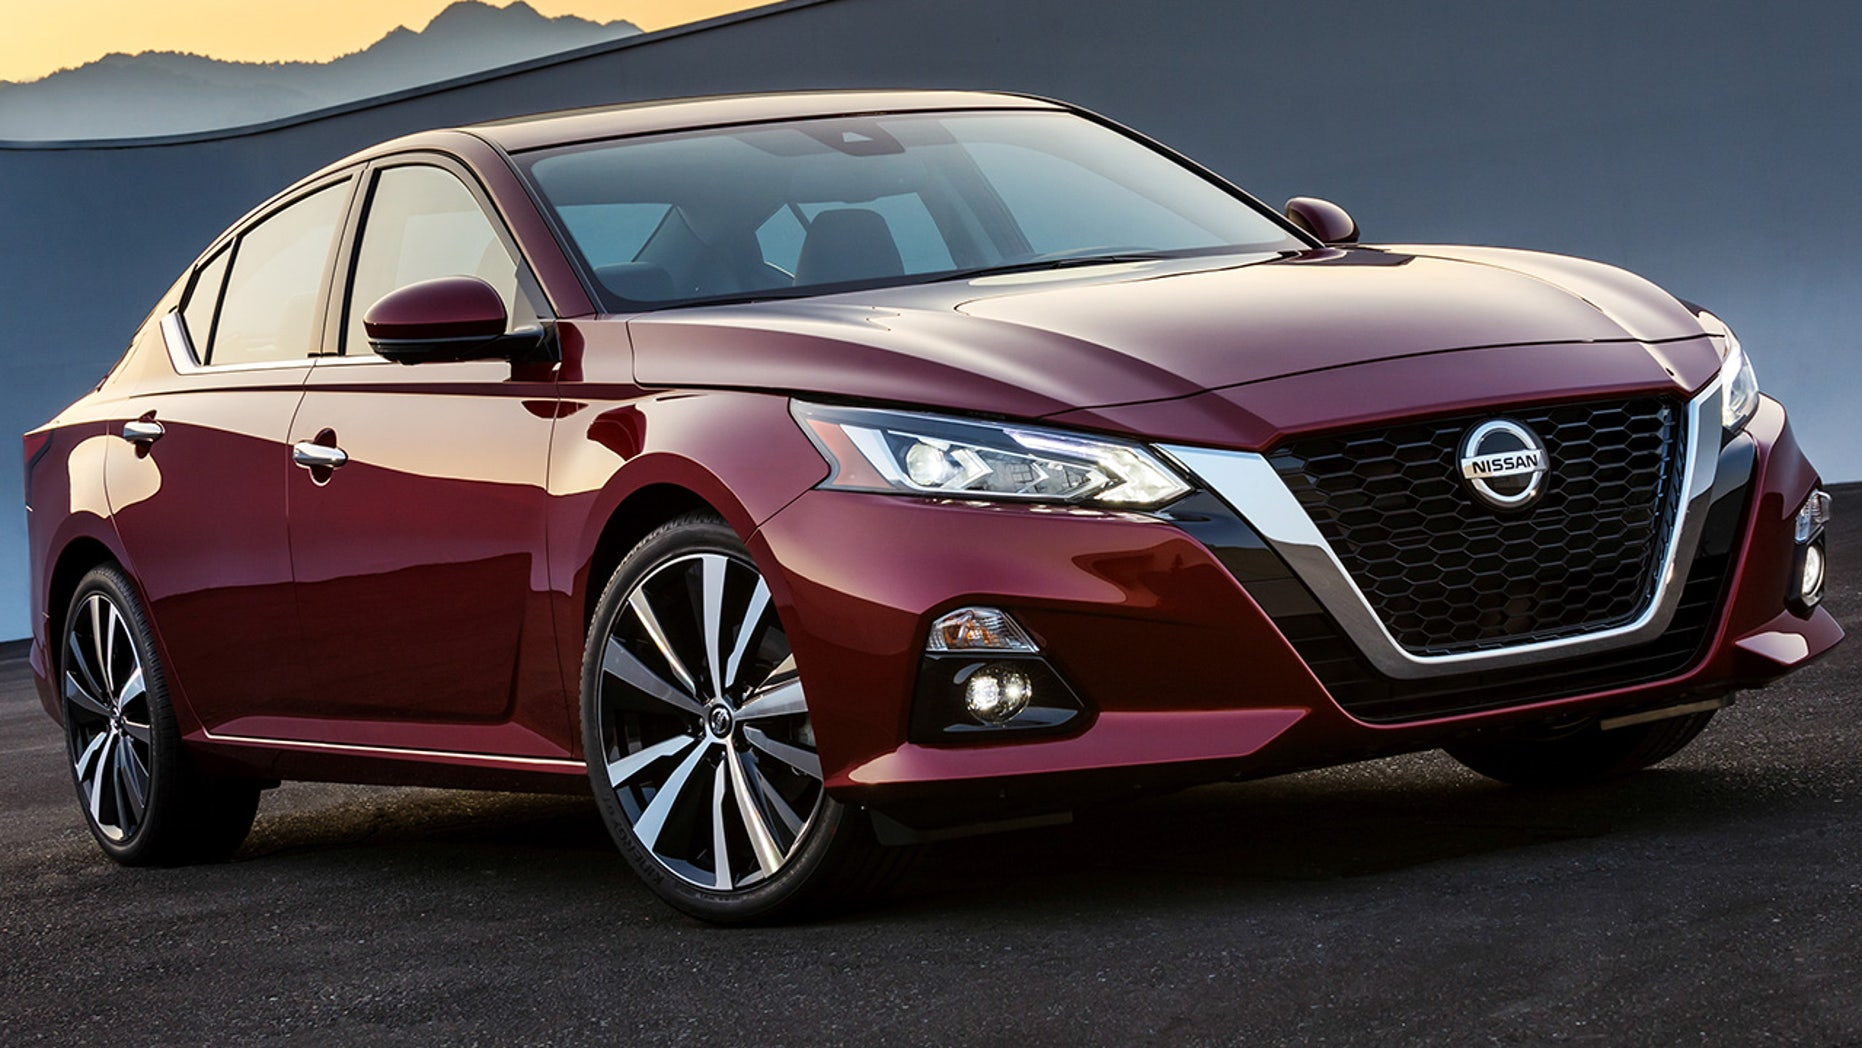 2019 Nissan Altima Awd Test Drive Double Your Pleasure